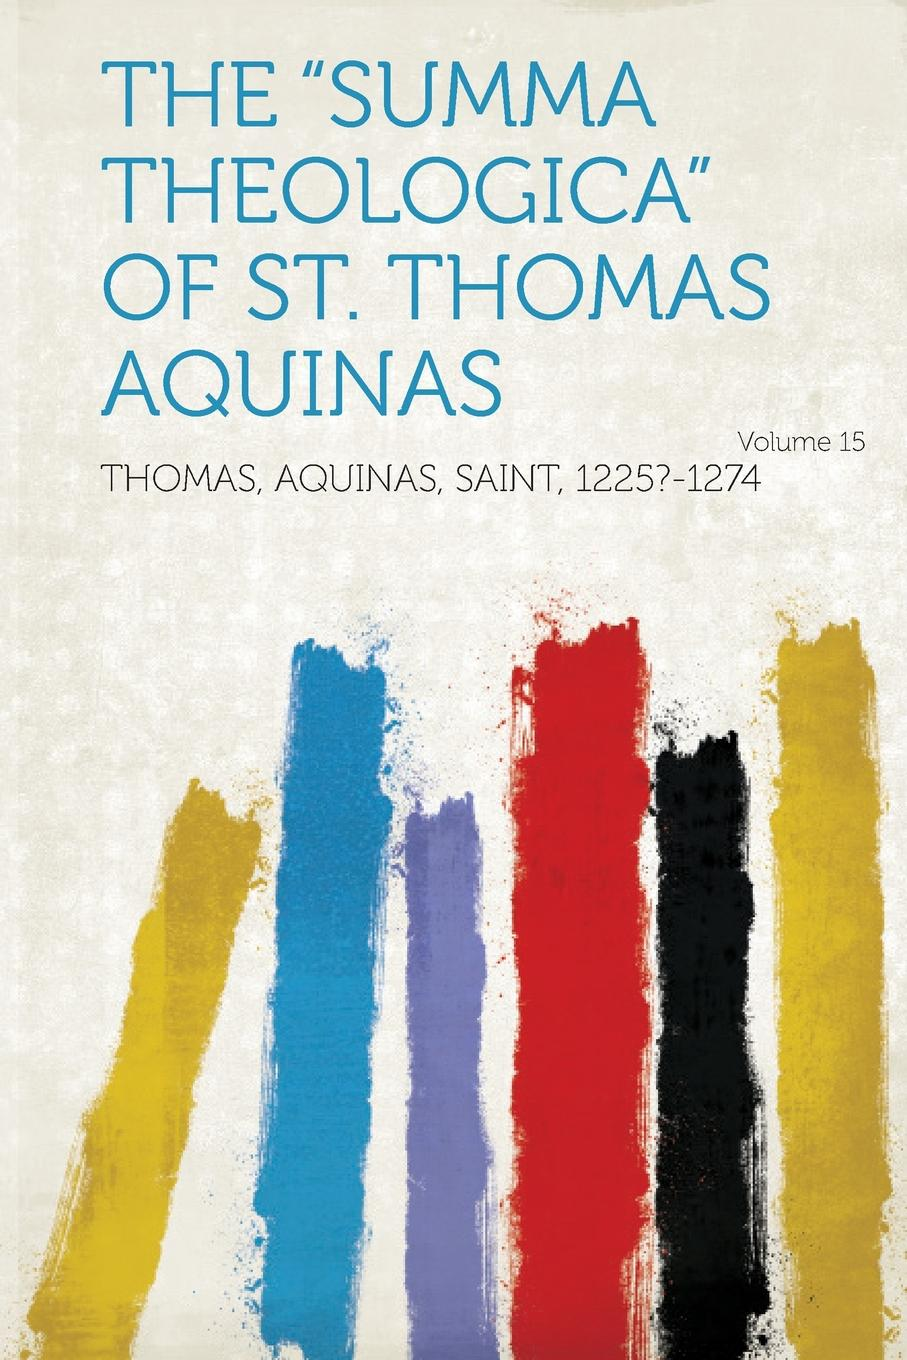 Thomas Aquinas The Summa Theologica of St. Thomas Aquinas Volume 15 aquinas saint thomas aquinas ethicus or the moral teaching of st thomas a translation of the principle portions of the second part of the summa theologica with notes